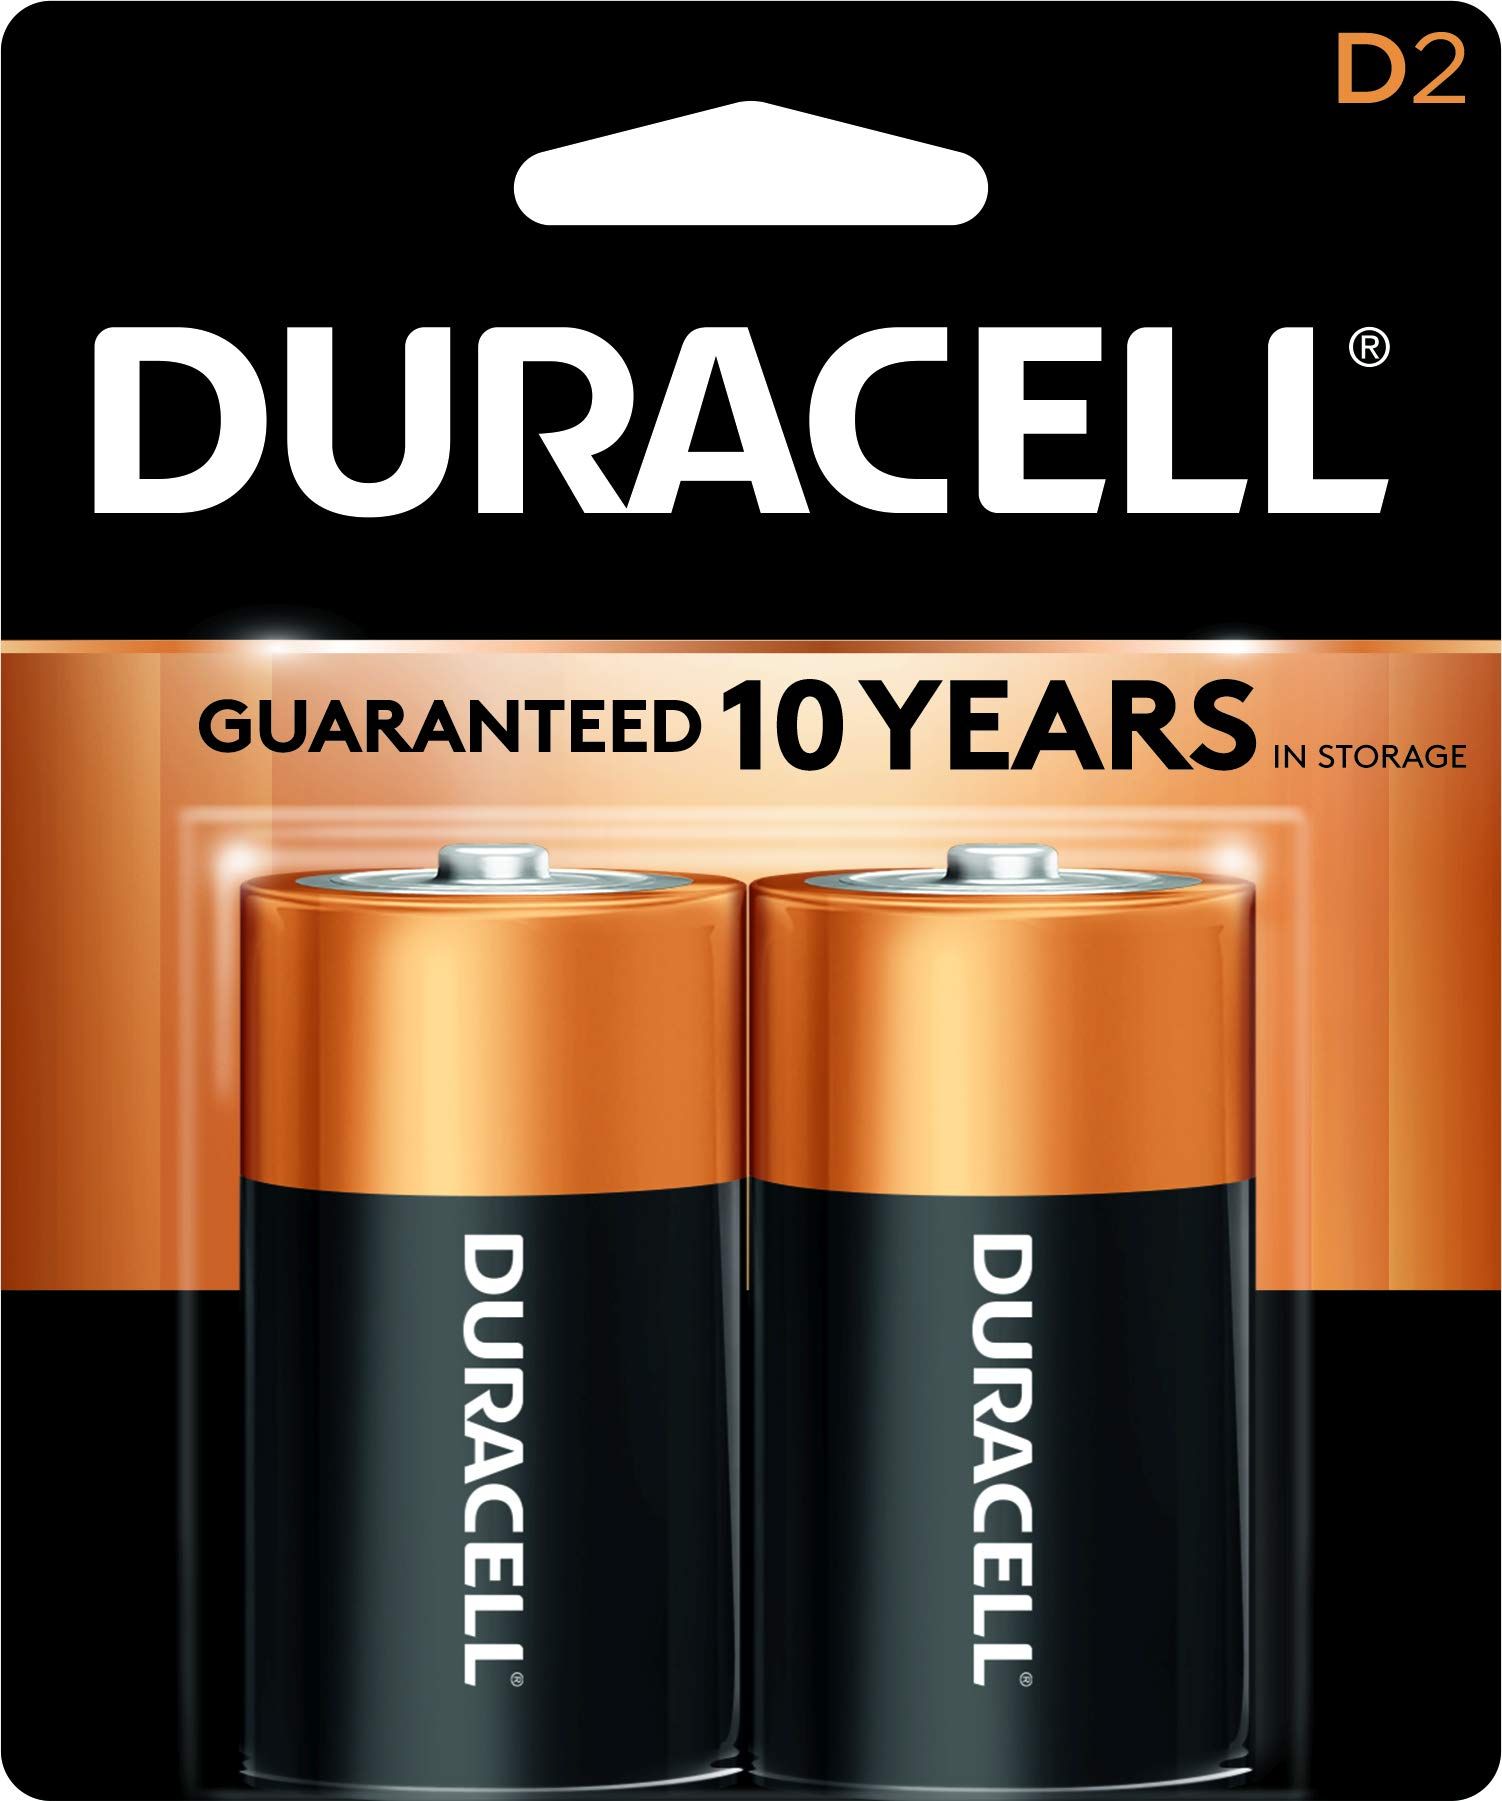 Duracell – CopperTop D Alkaline Batteries with recloseable package – long lasting, all-purpose D battery for household and business